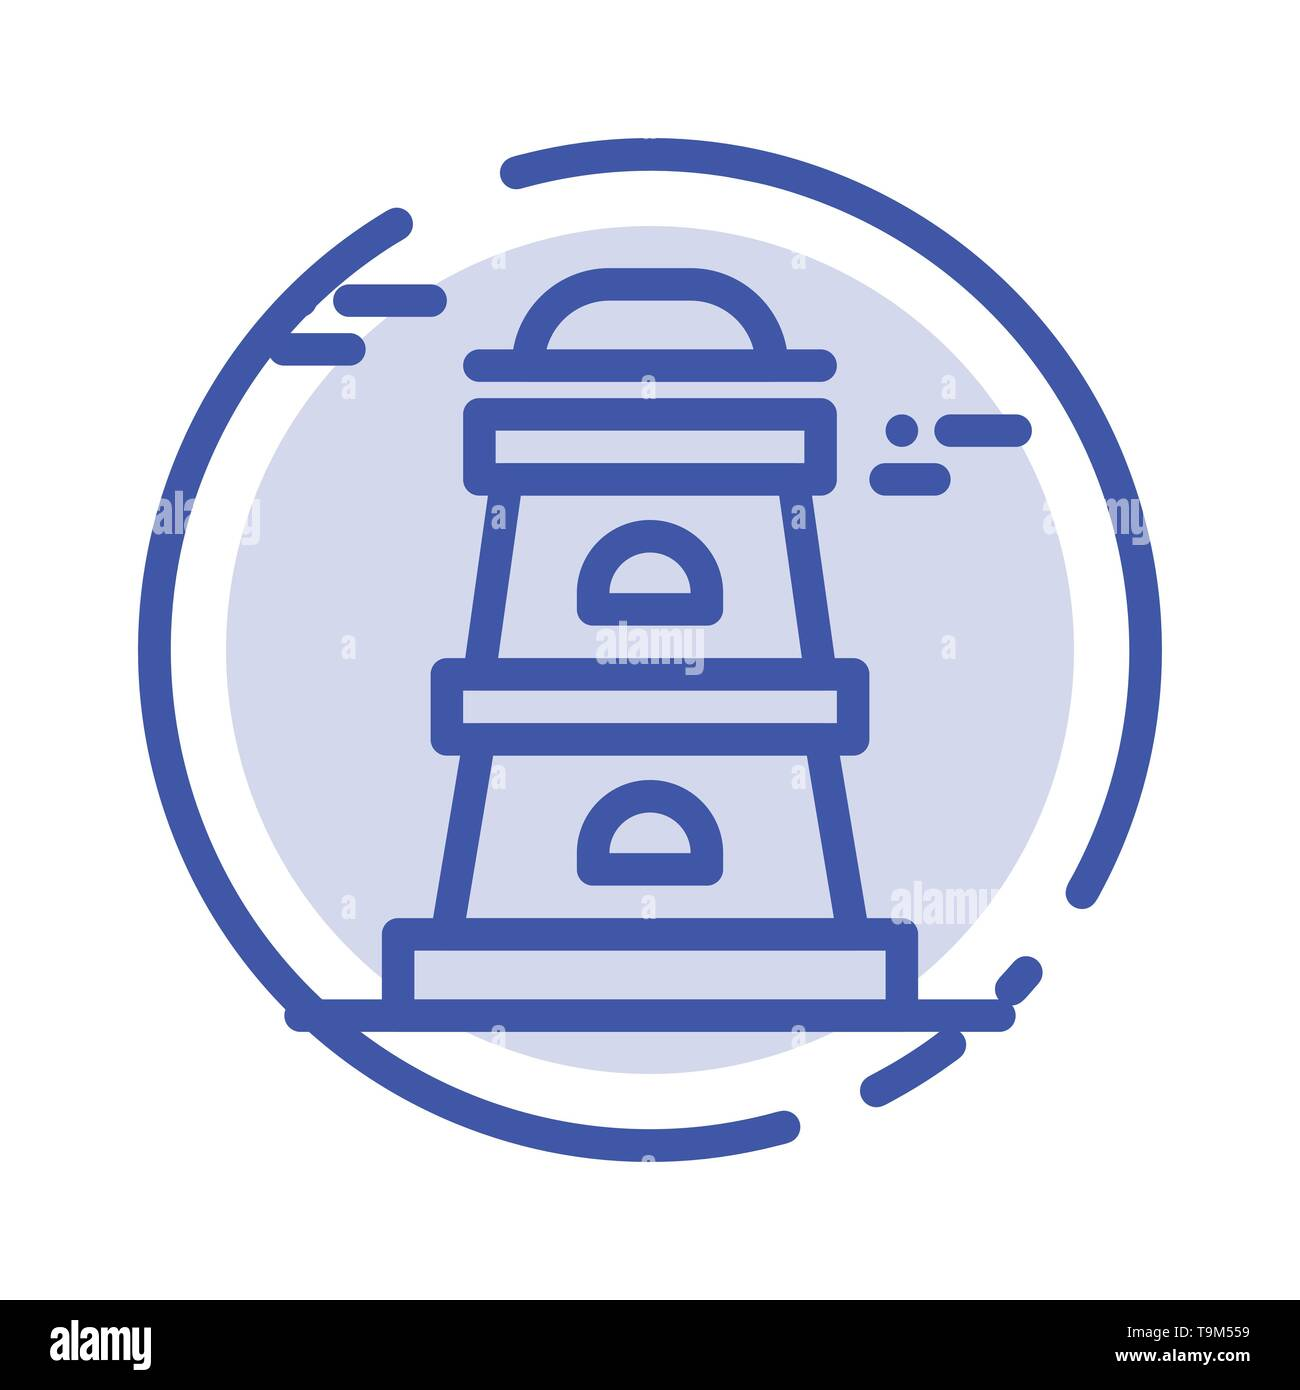 Observatory, Tower, Watchtower Blue Dotted Line Line Icon - Stock Vector